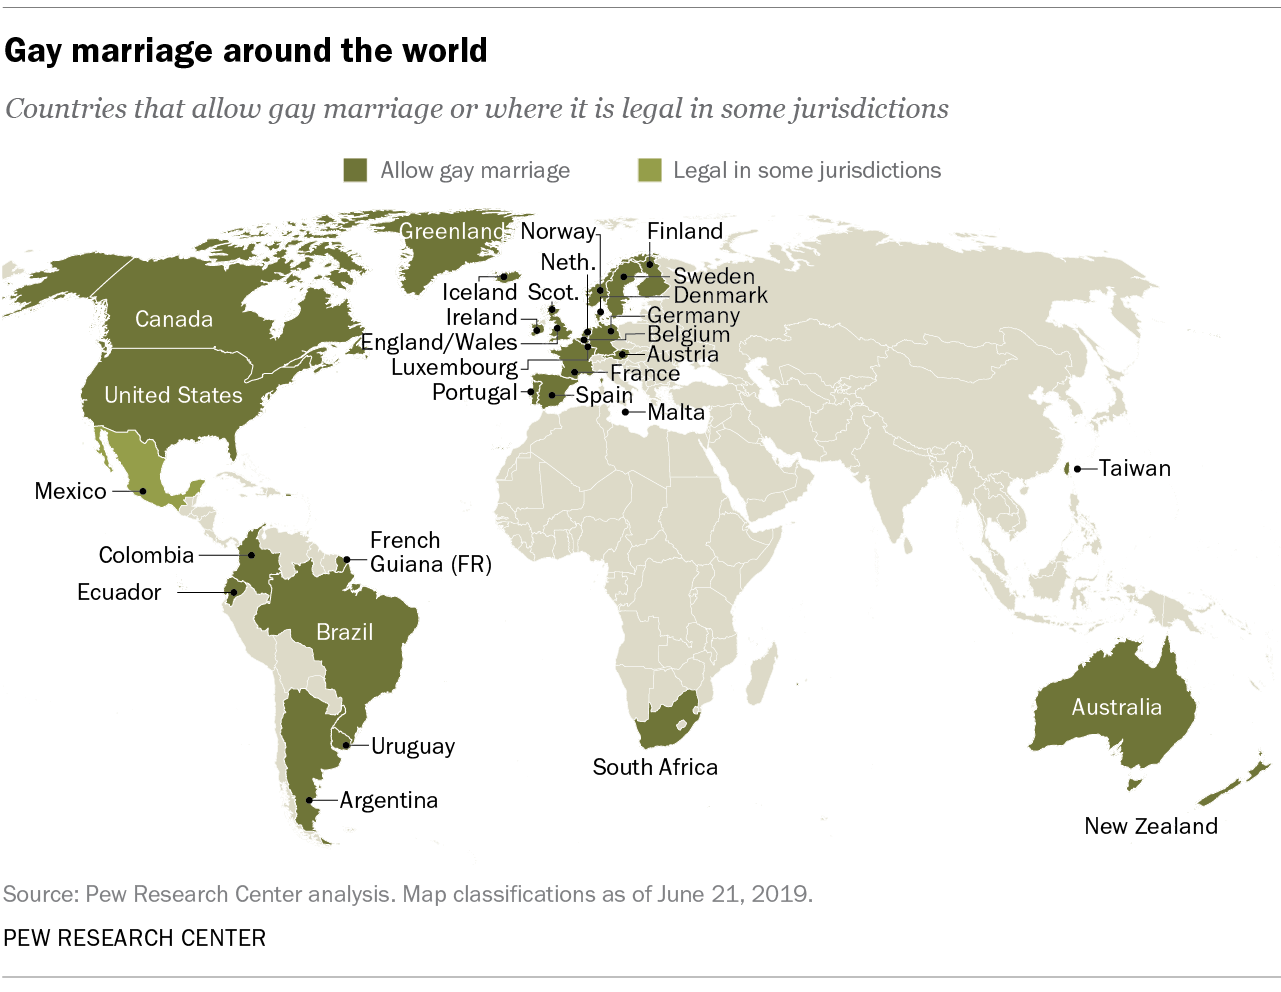 FT_19.06.20_GlobalSameSexMarriage_Gay-marriage-around-world.png